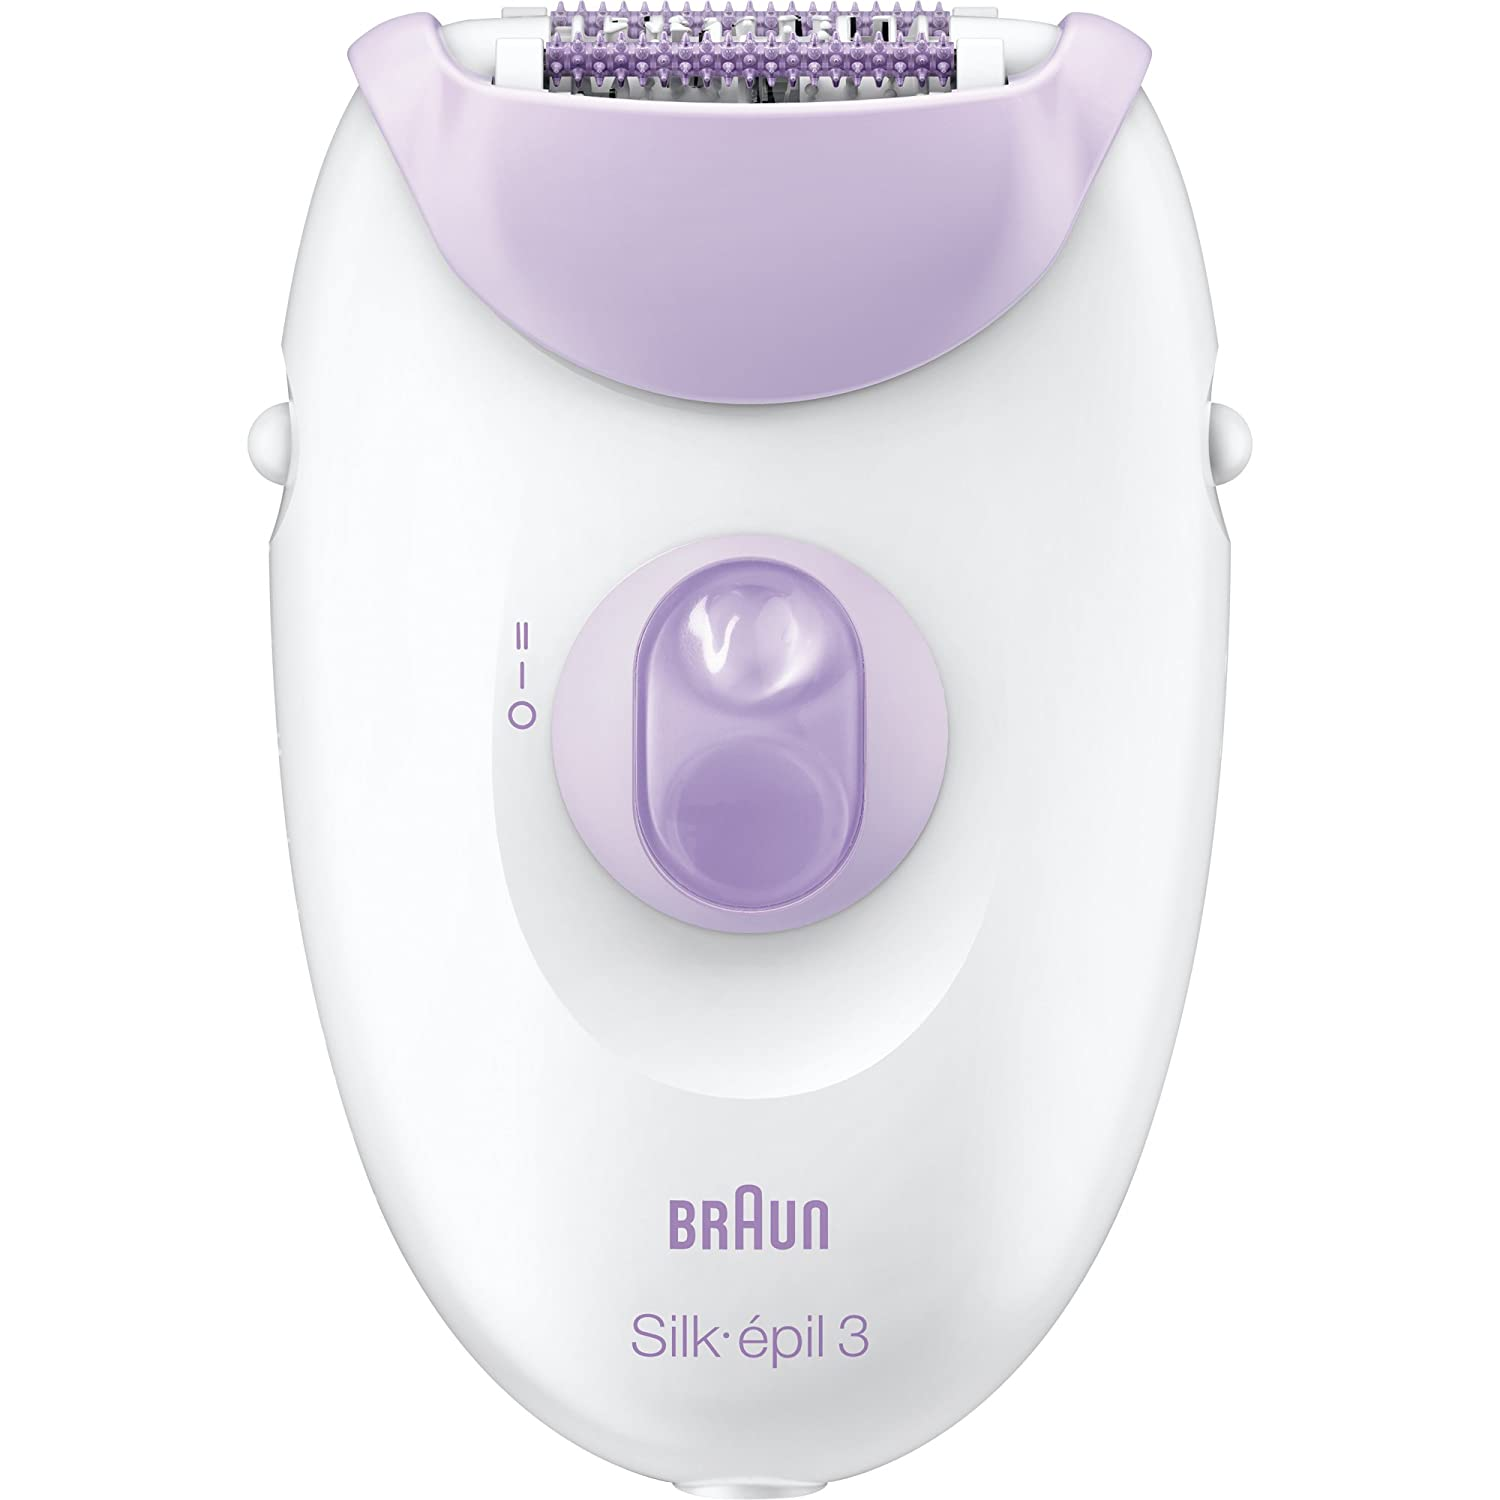 Braun Silk-épil 3 Women's Epilator, Electric Hair Removal, White/Purple (Packaging May Vary)